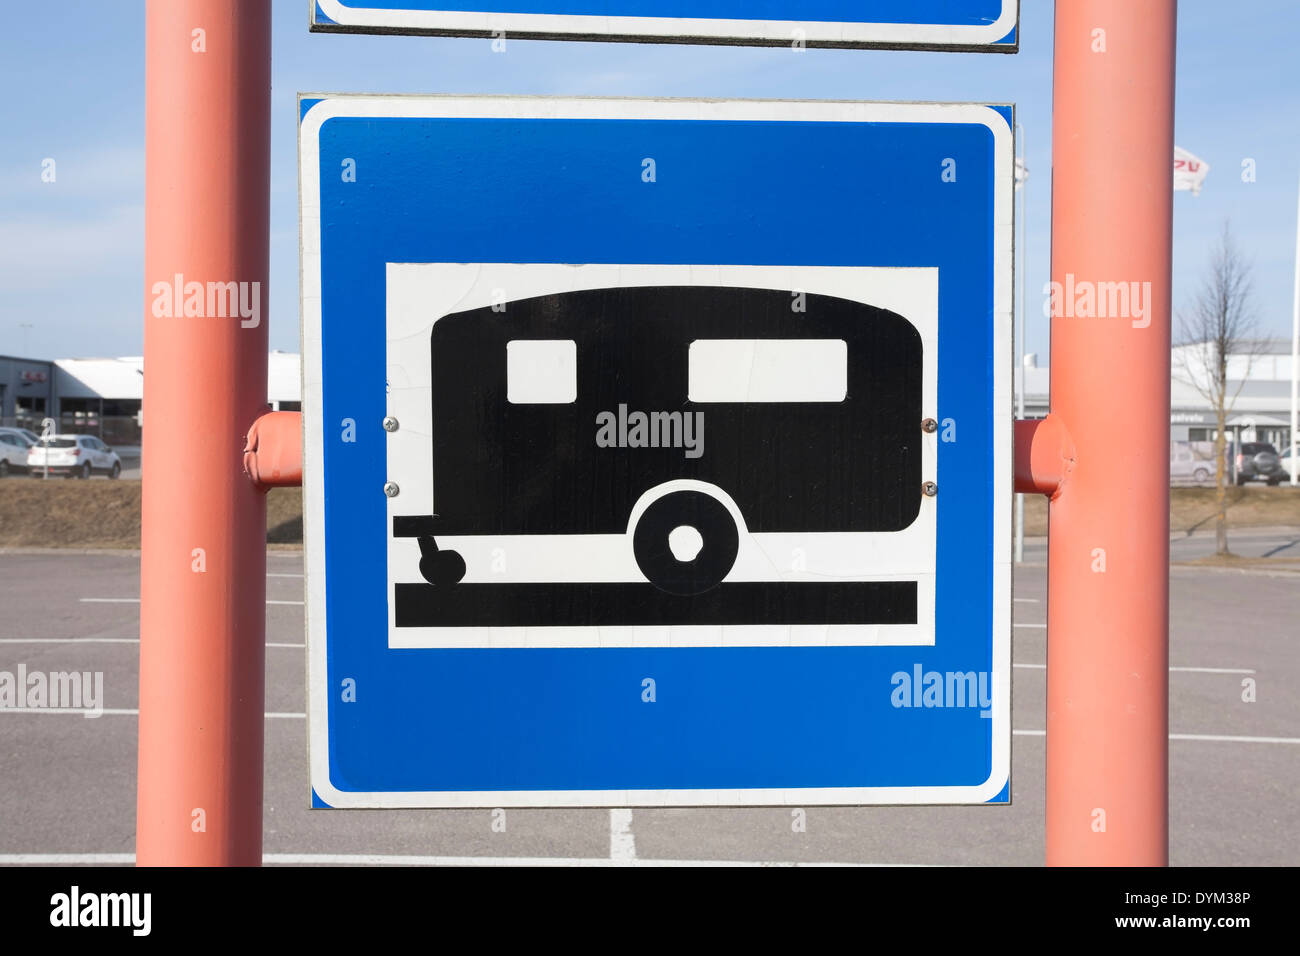 trailer park parking lot sign, Finland Stock Photo